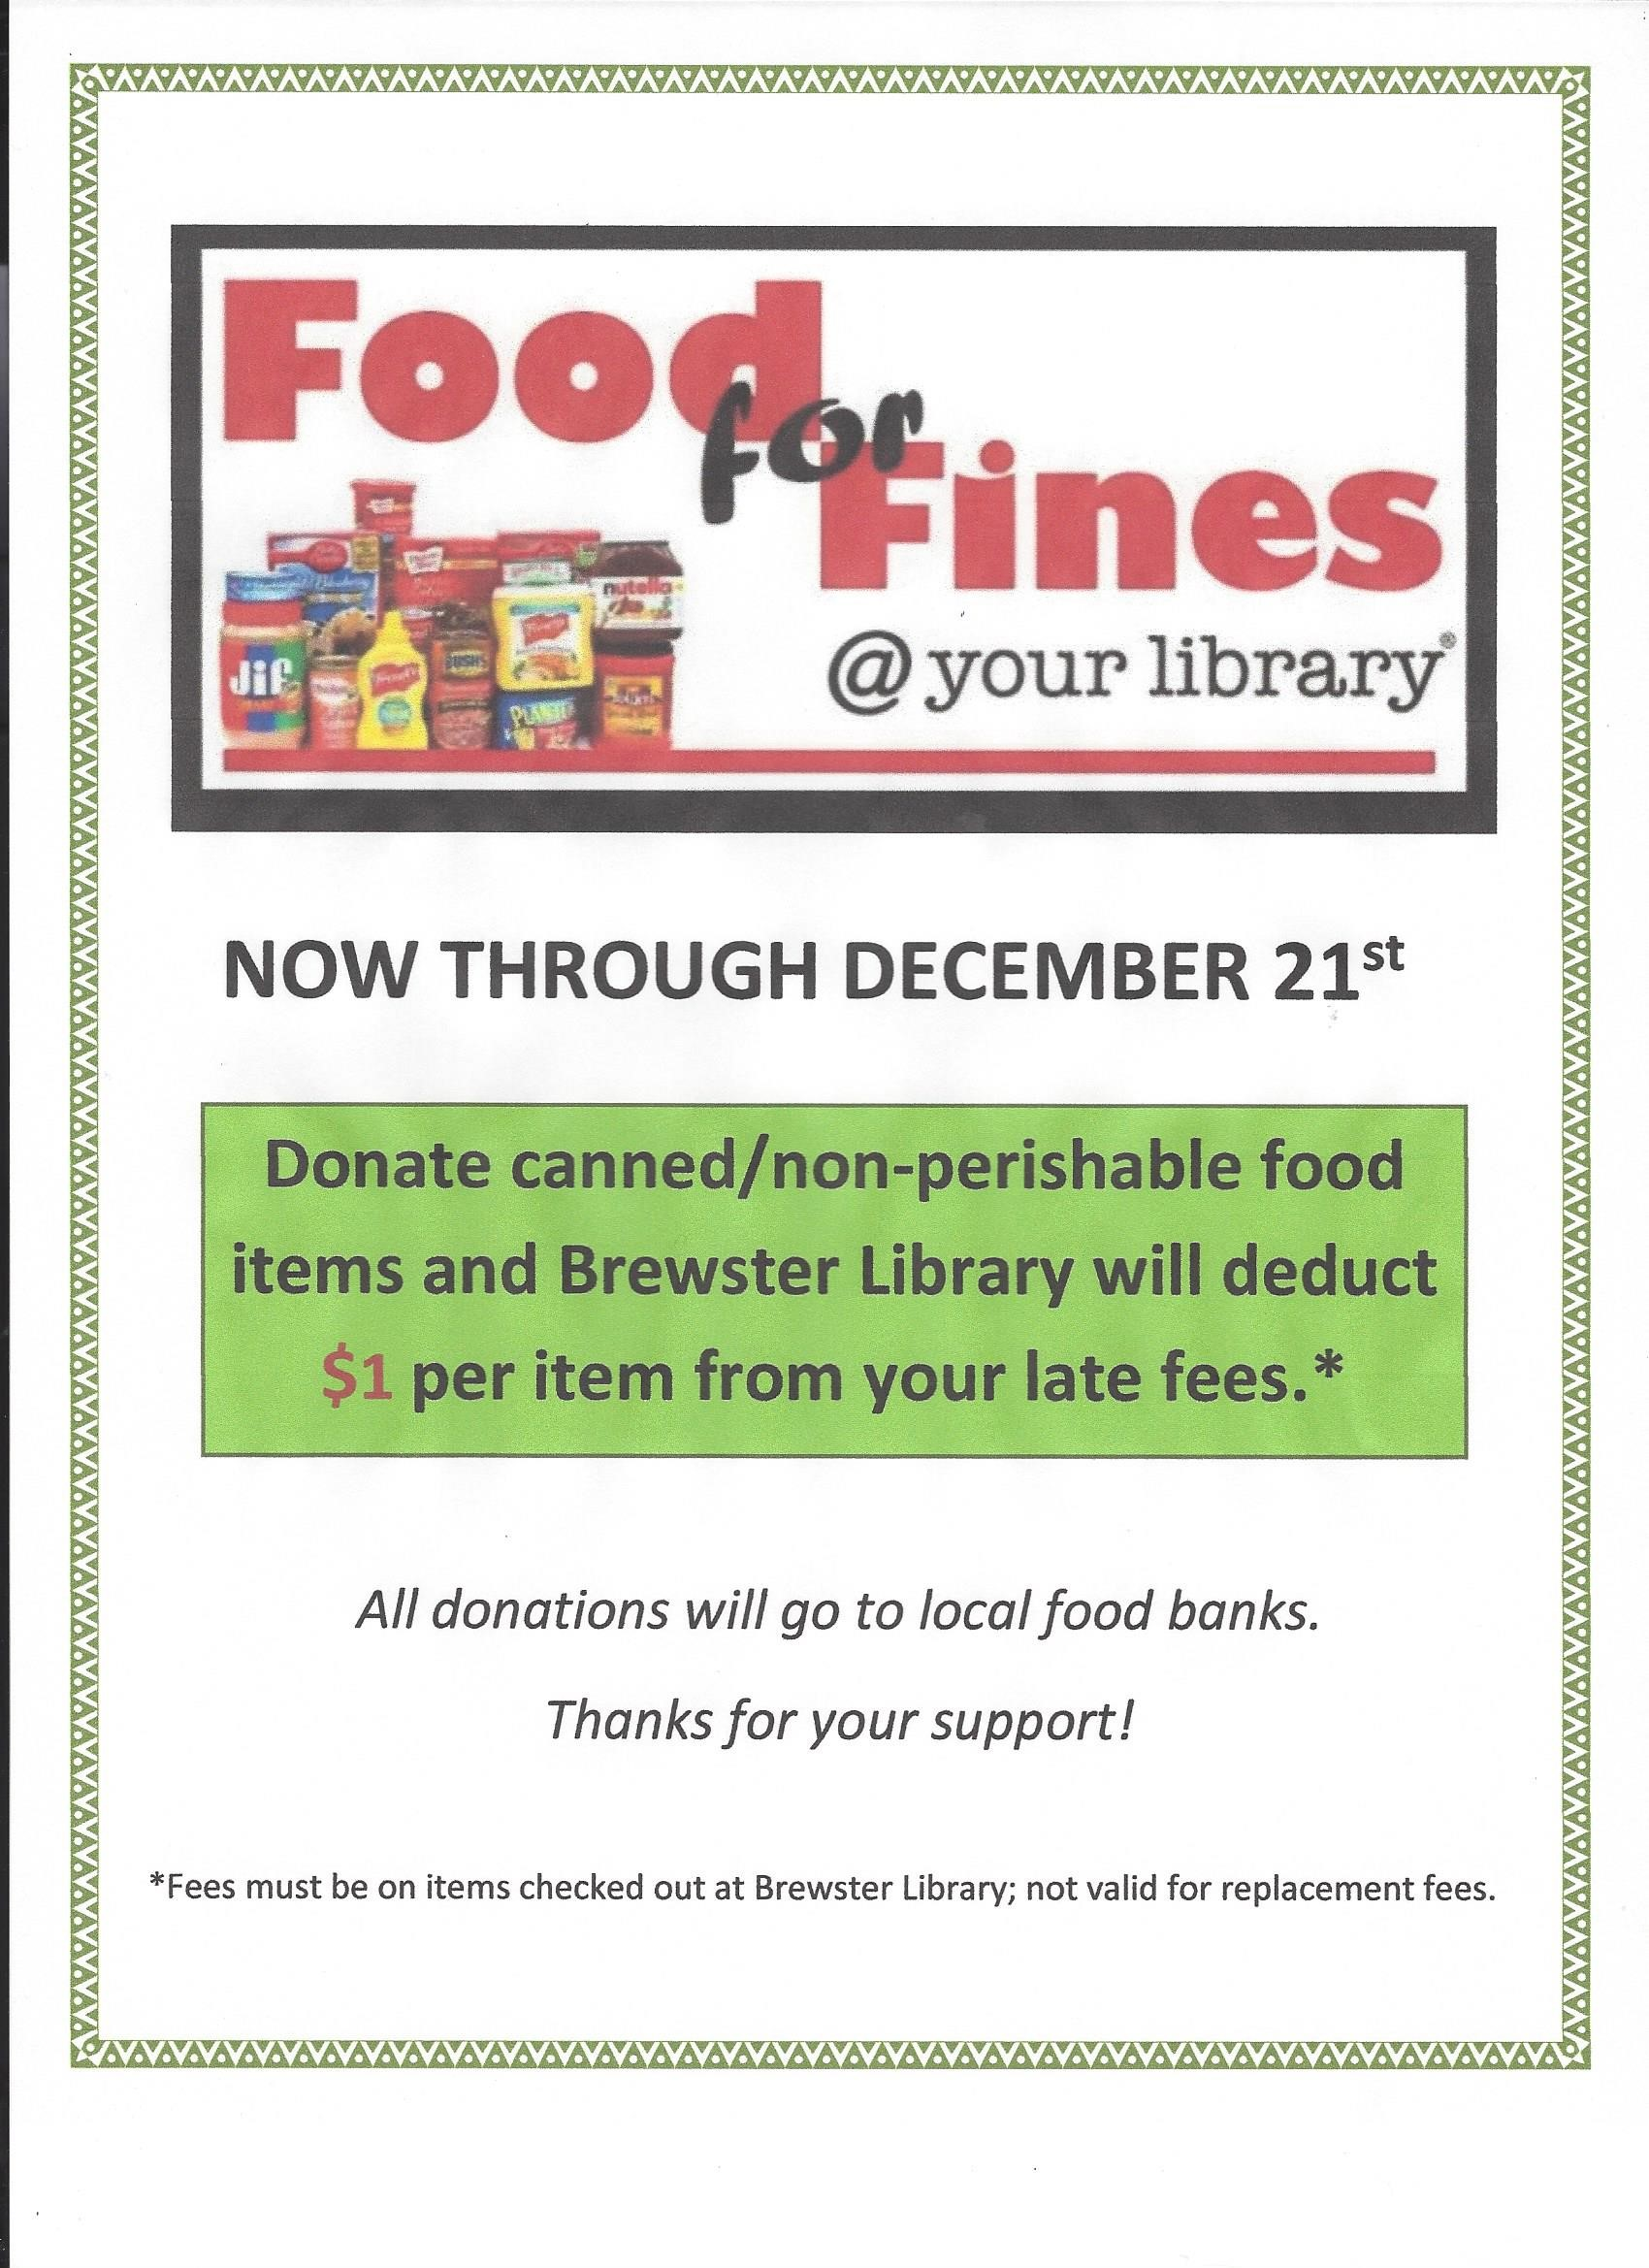 884adbef8cc Dec 21 is the Last Day to Donate Food for Fines at Brewster Library